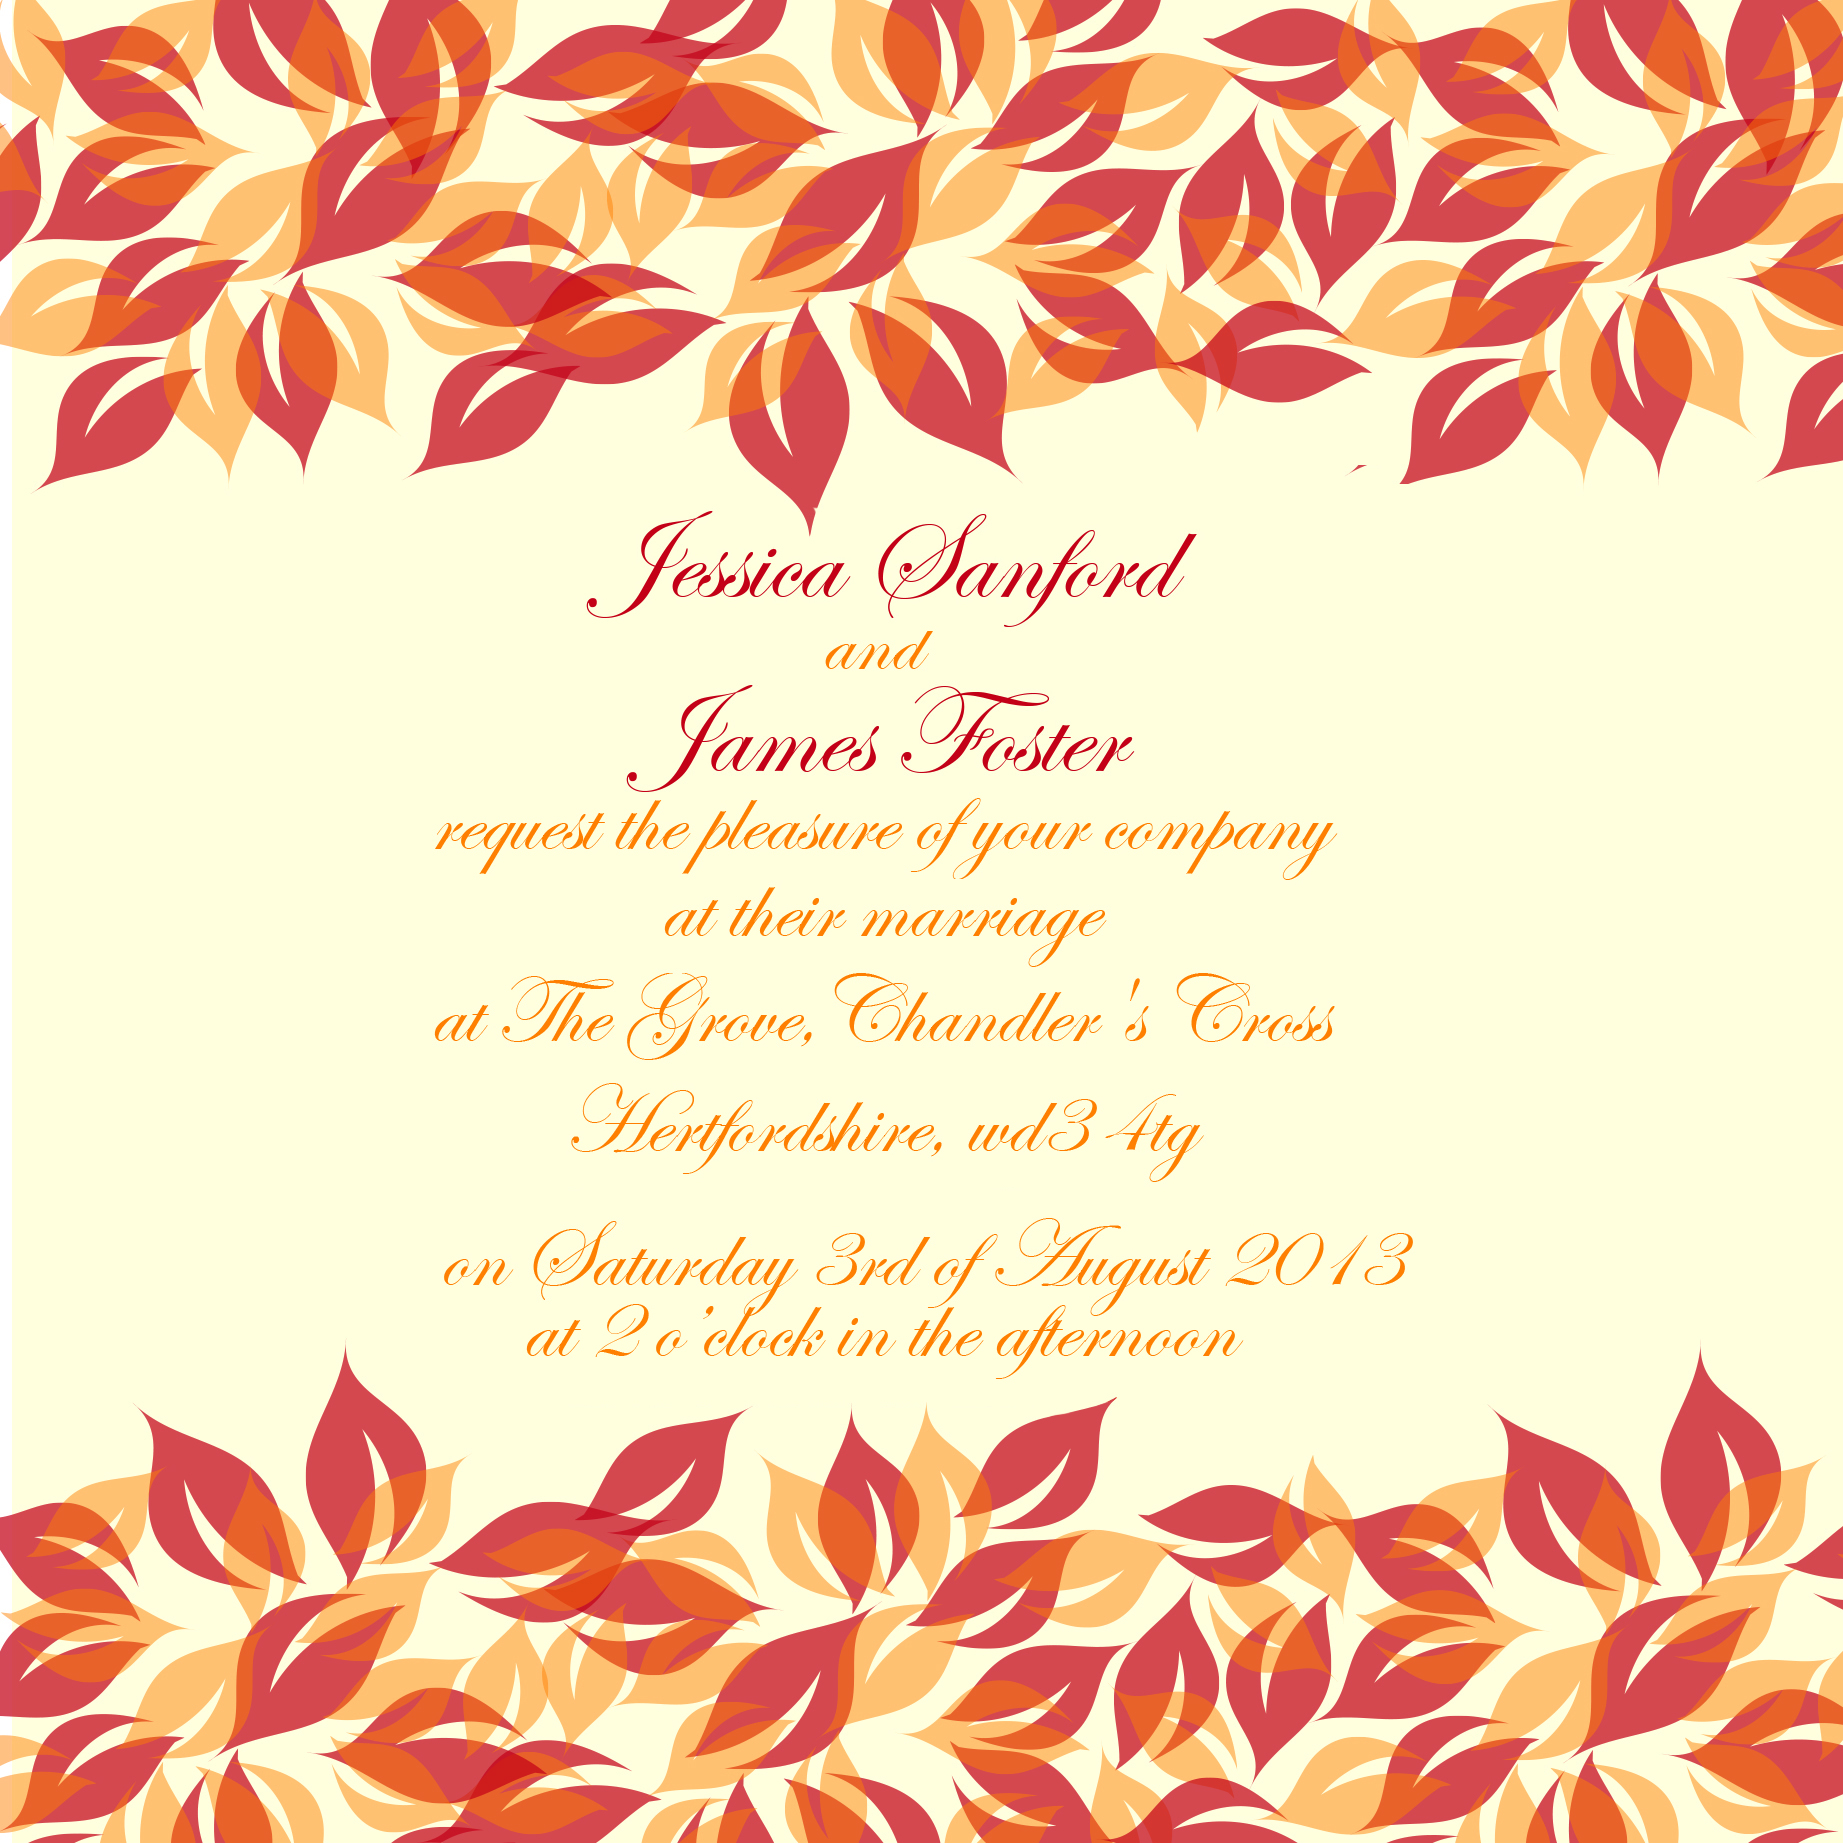 autumn winter wedding stationery trends autumn wedding invitations Red and orange leaves wedding invitation for Autumn Winter trends by Ananyacards com